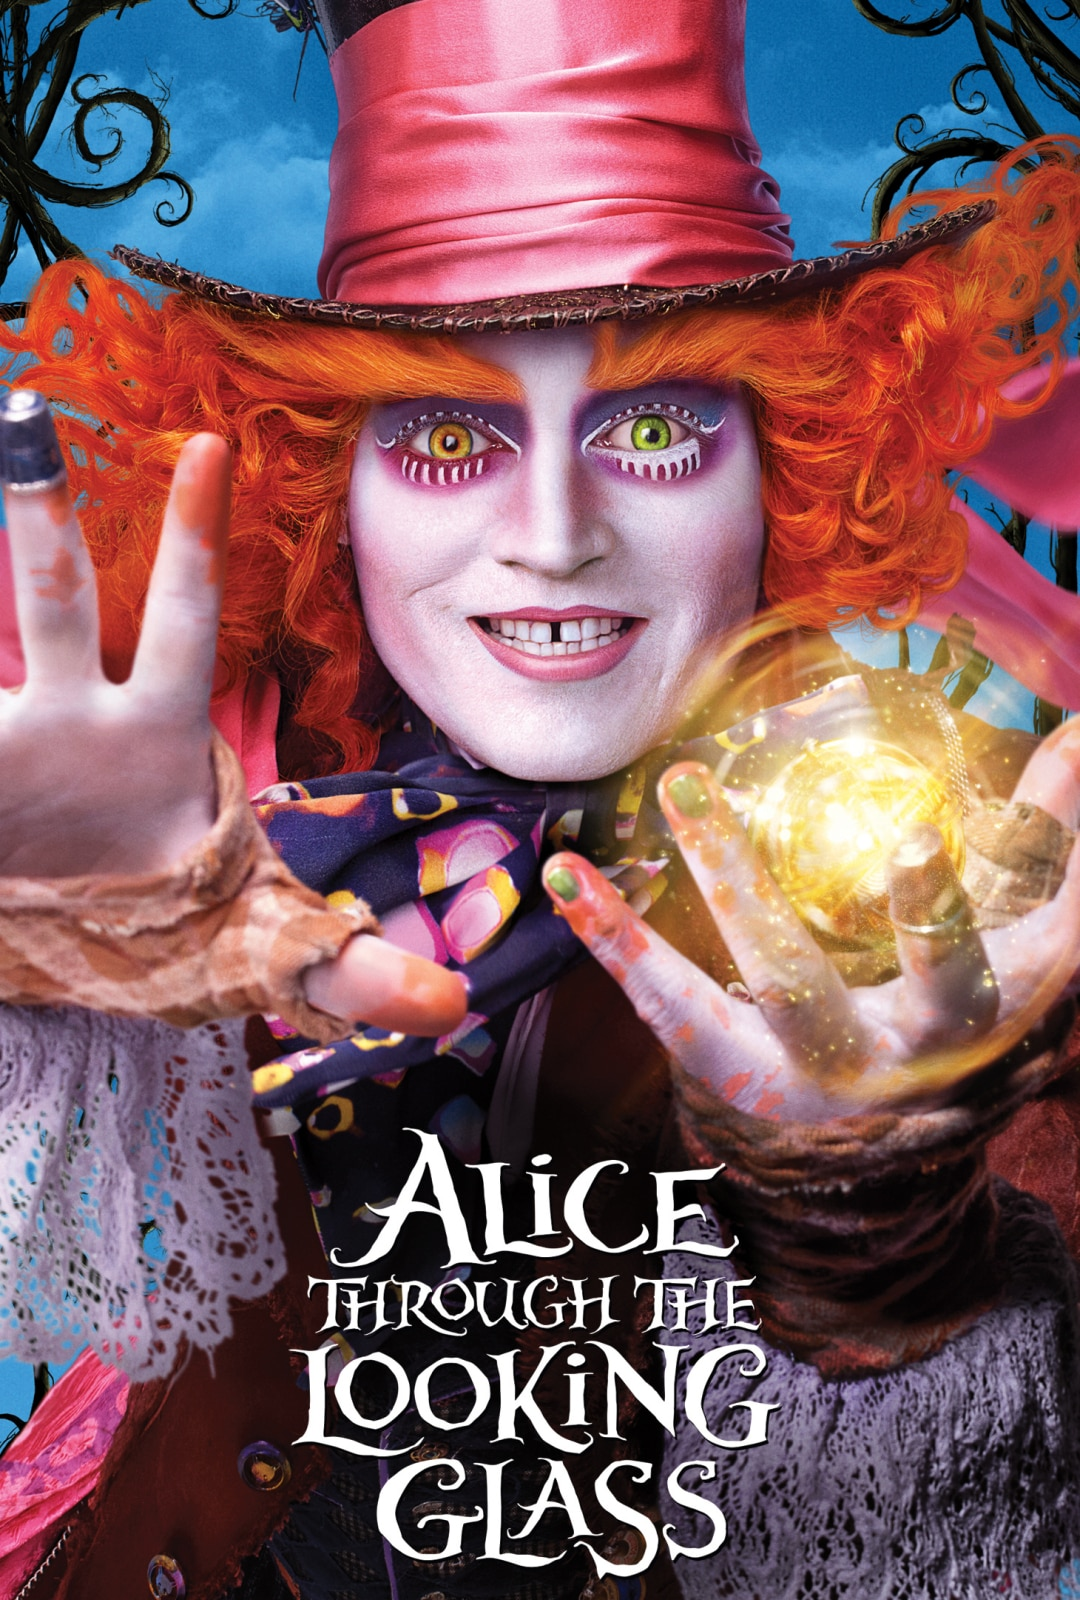 alice through the looking glass full movie free watch